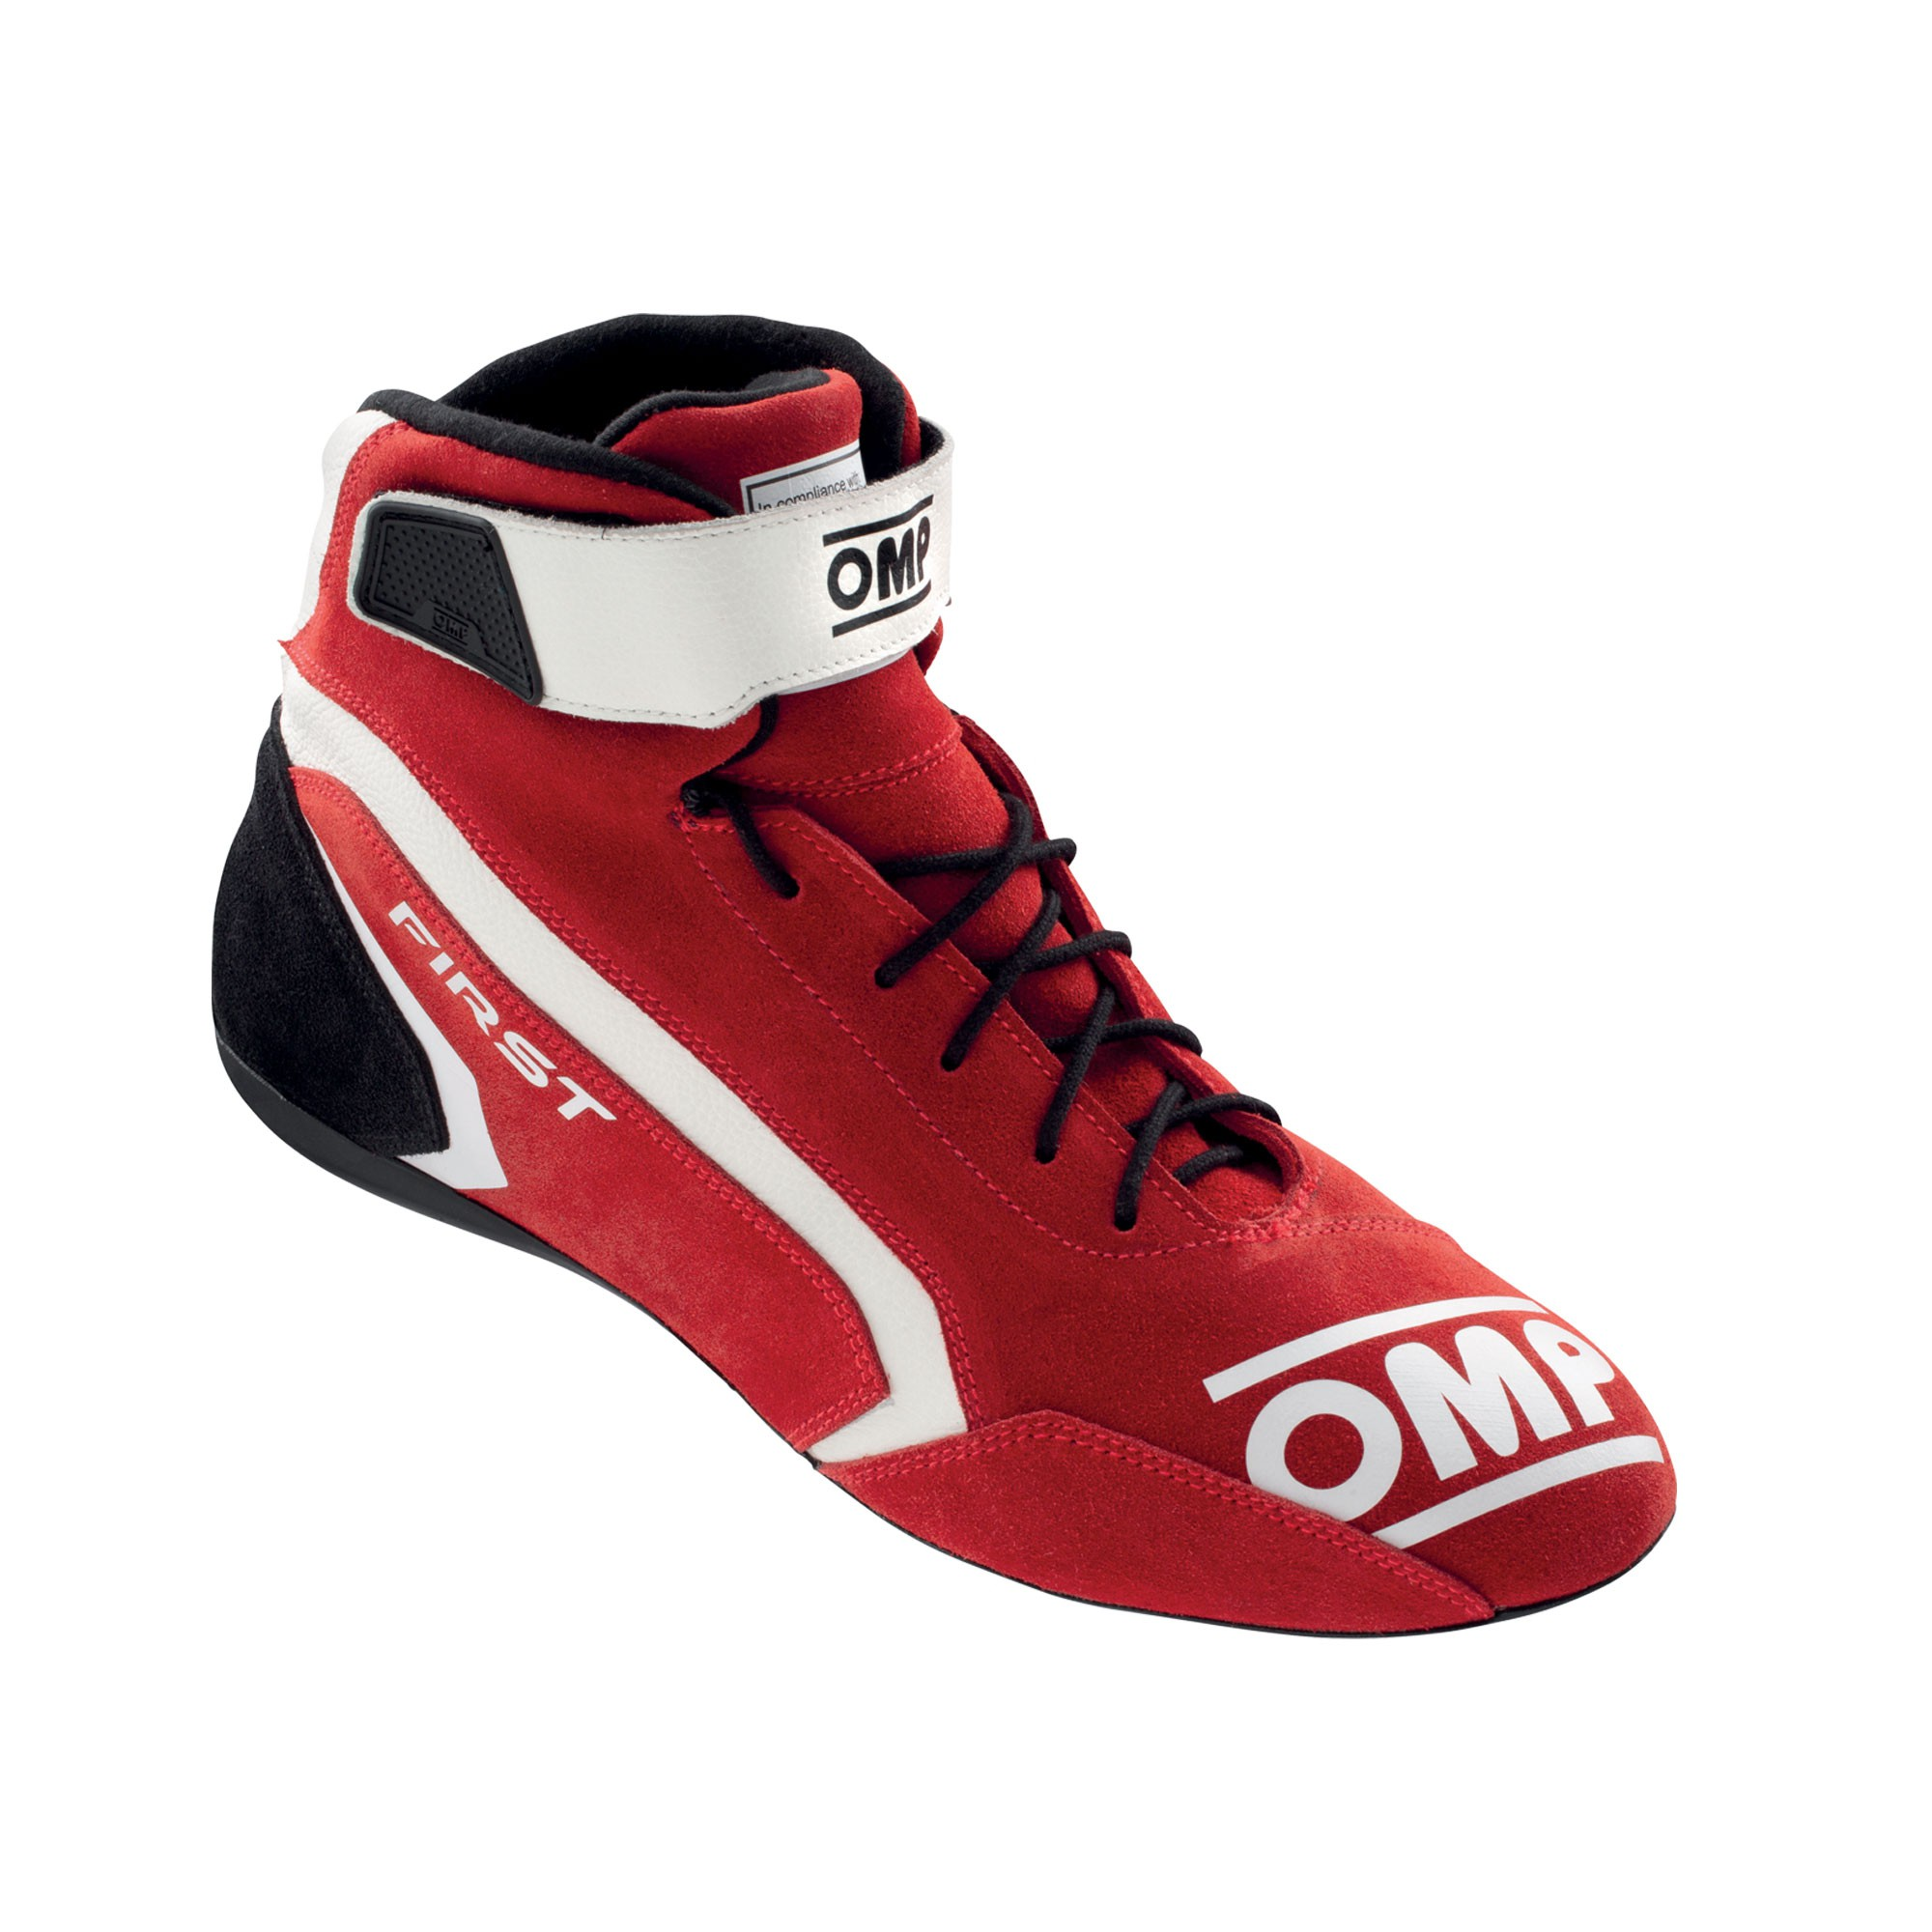 FIRST SHOES my2021 RED TG. 37 FIA 8856-2018